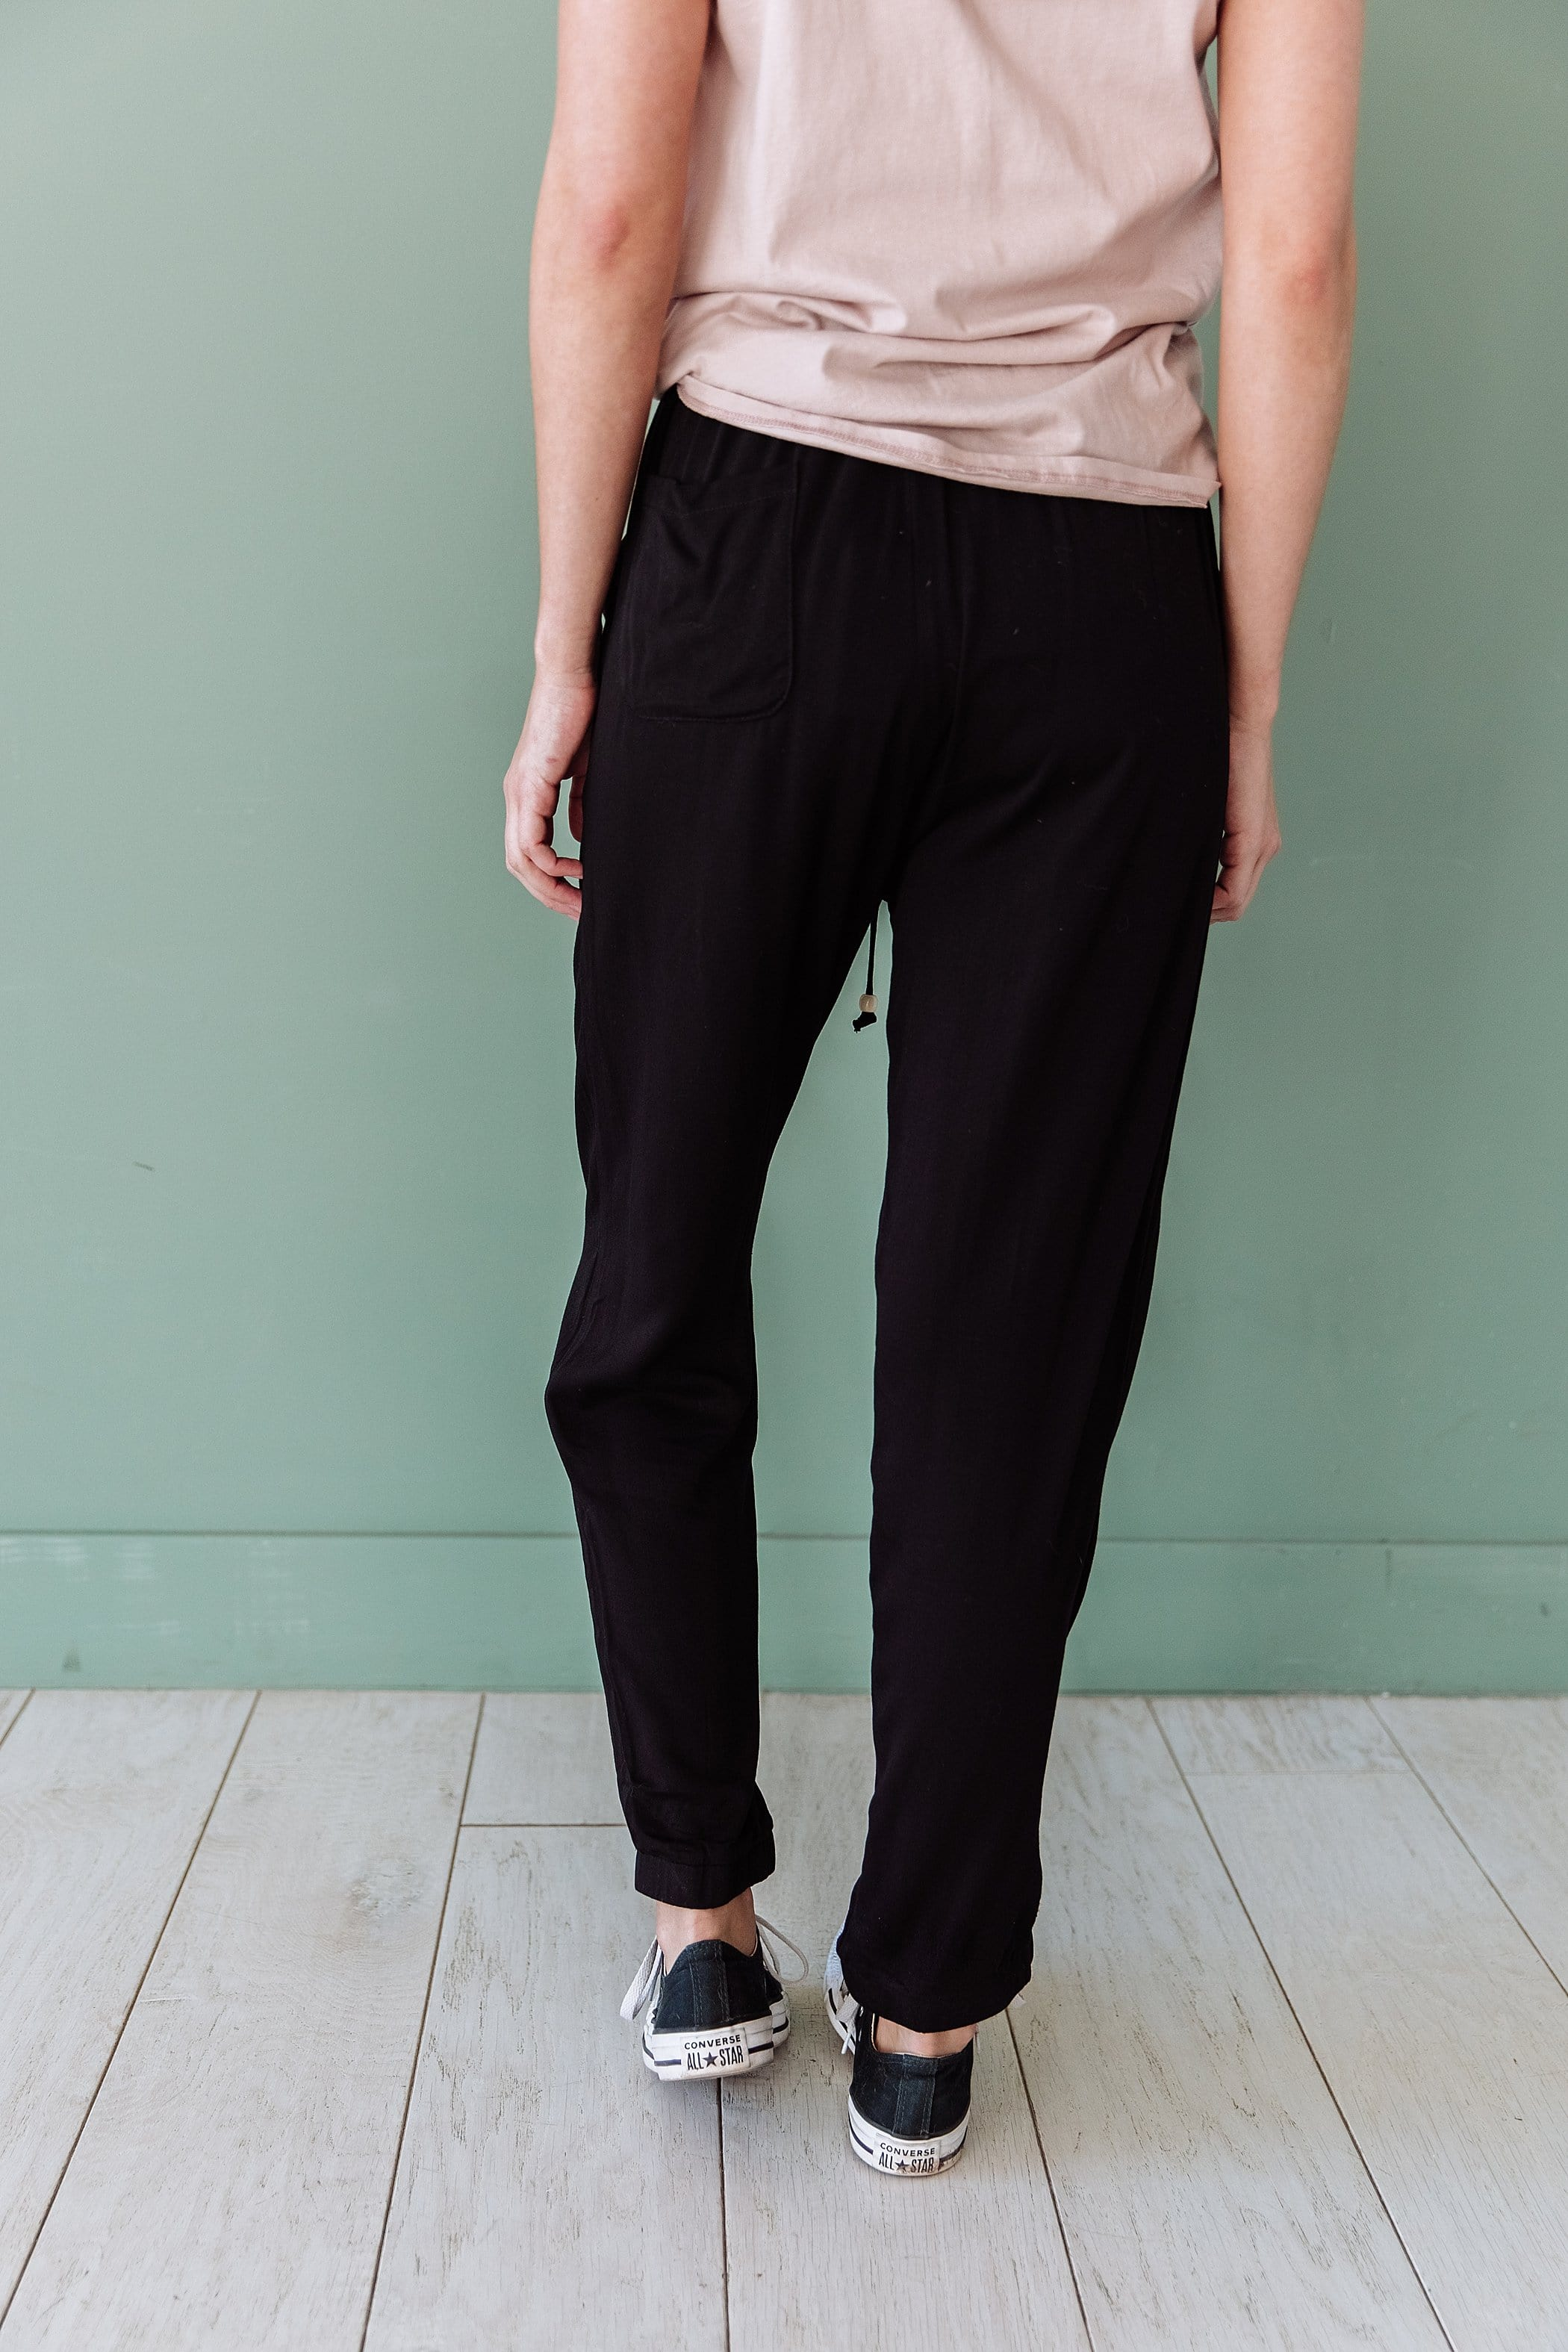 The Palau Tapered Pants in Black and Olive